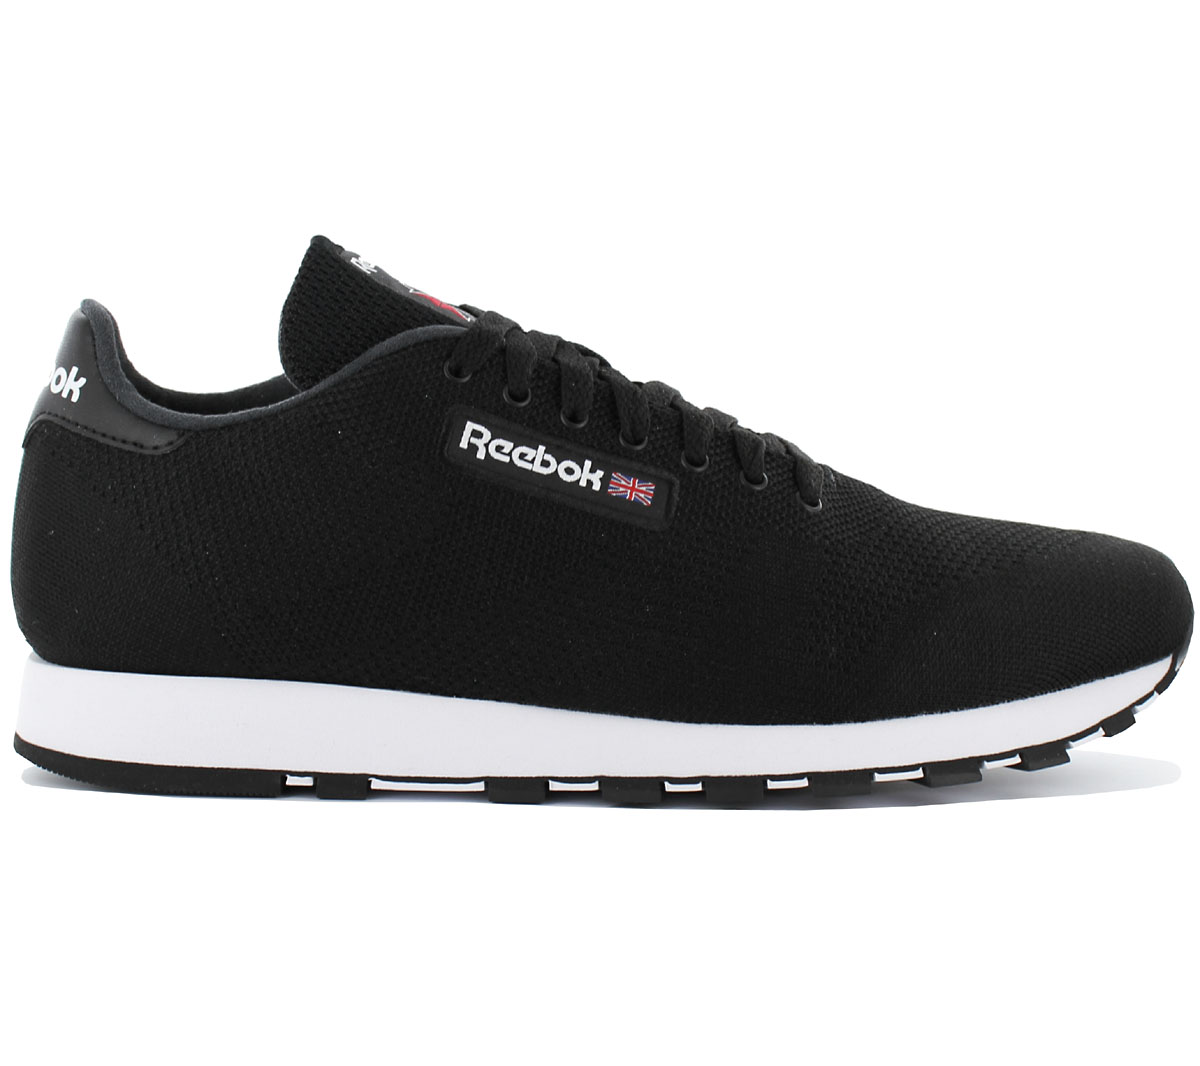 bdbdfbdc38487 Reebok Classic Leather Ultk Ultraknit Baskets   Chaussures Homme Rbk ...